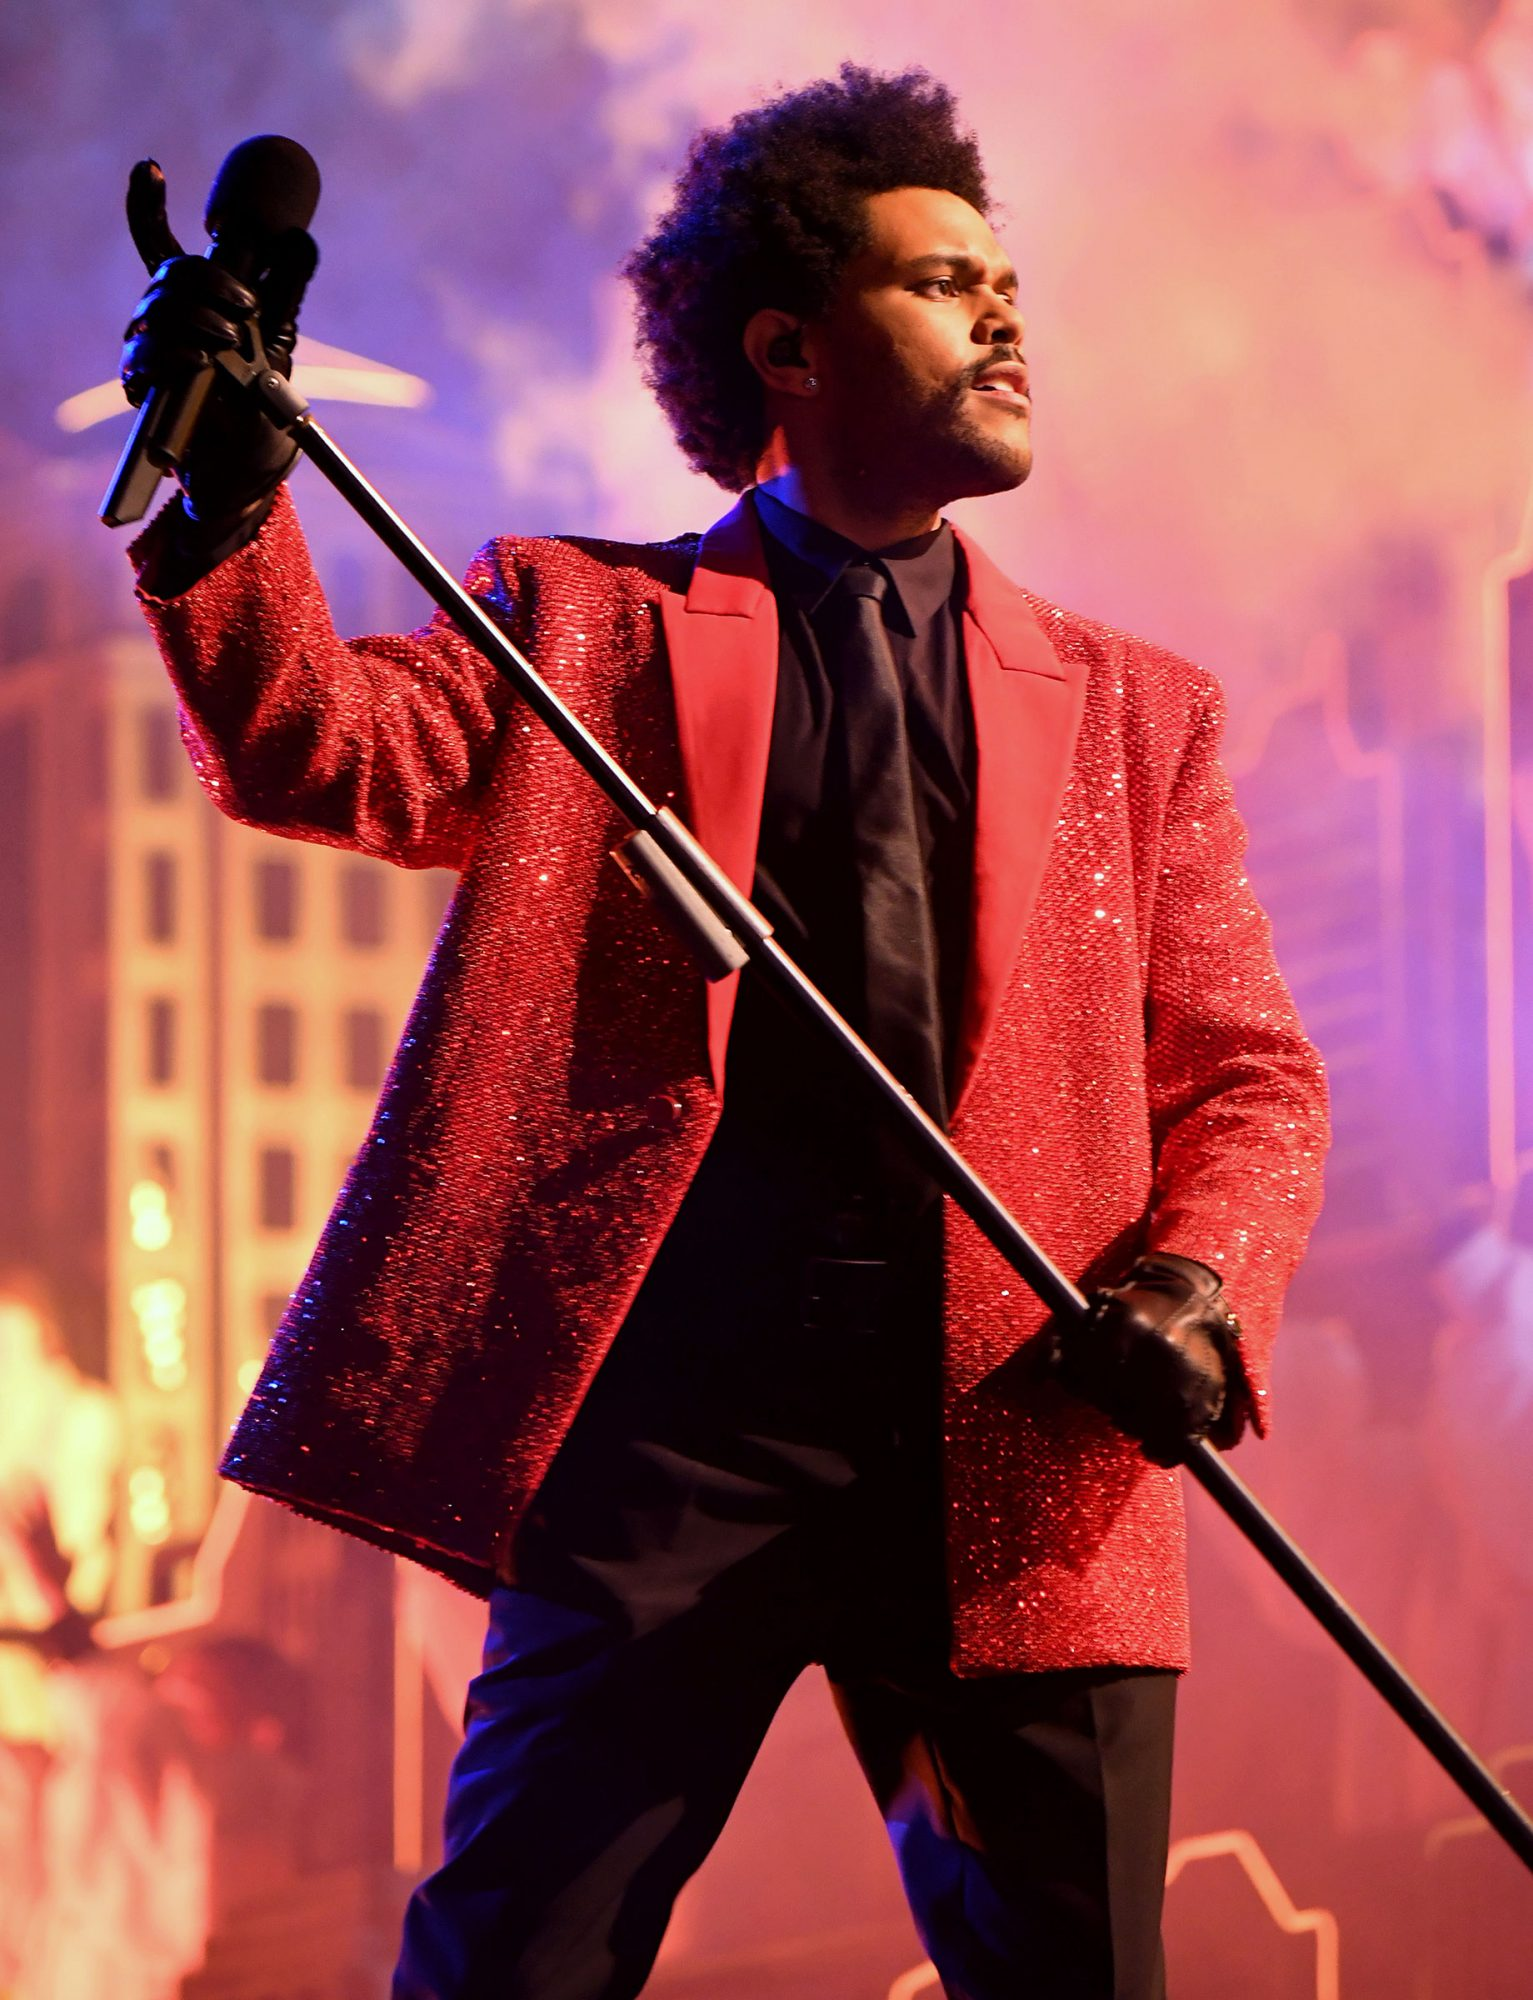 The Weeknd performs for the Super Bowl LV Halftime Show at Raymond James Stadium